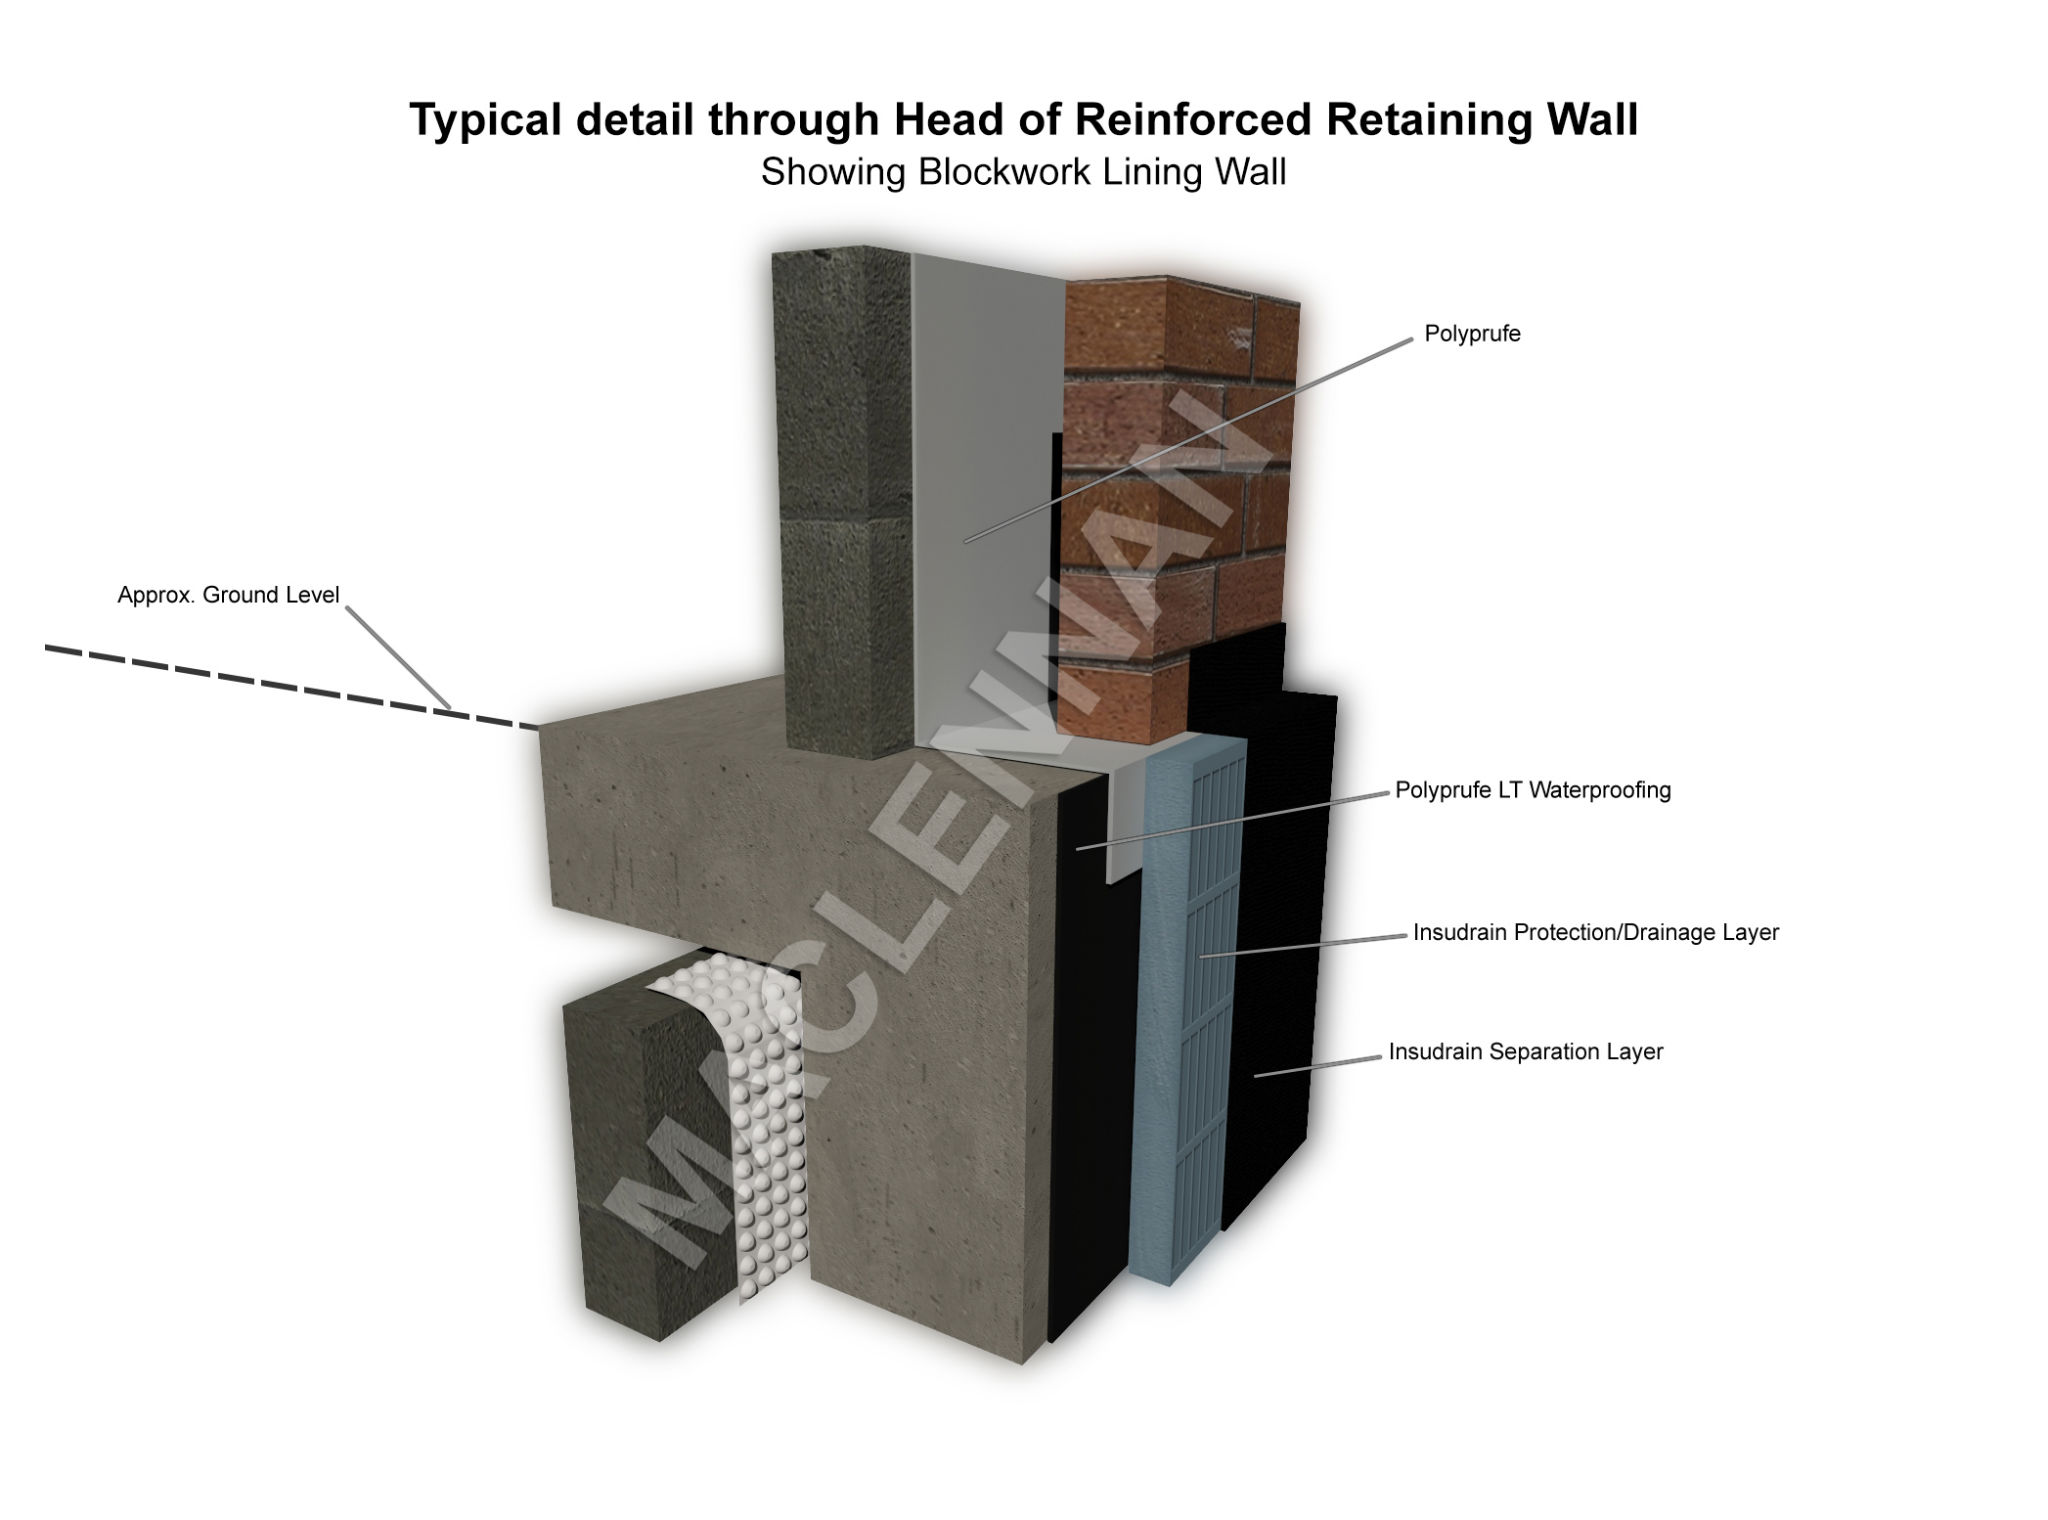 Typical detail through head of reinforces retaining wall